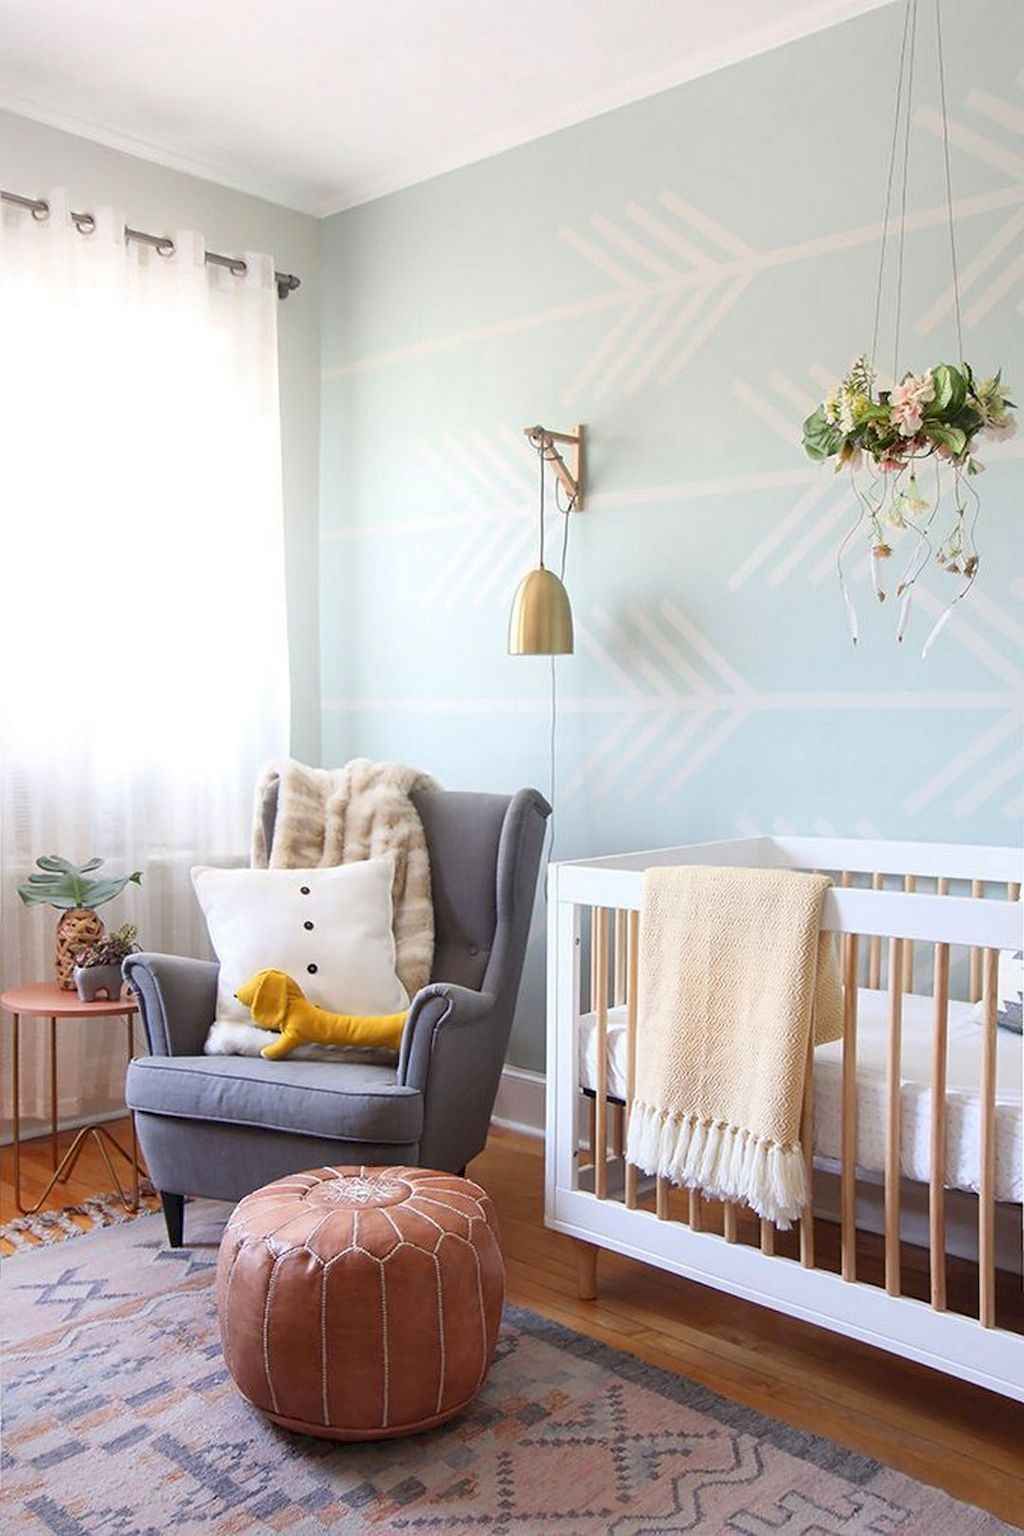 Awesome ideas bedroom for kids (32)